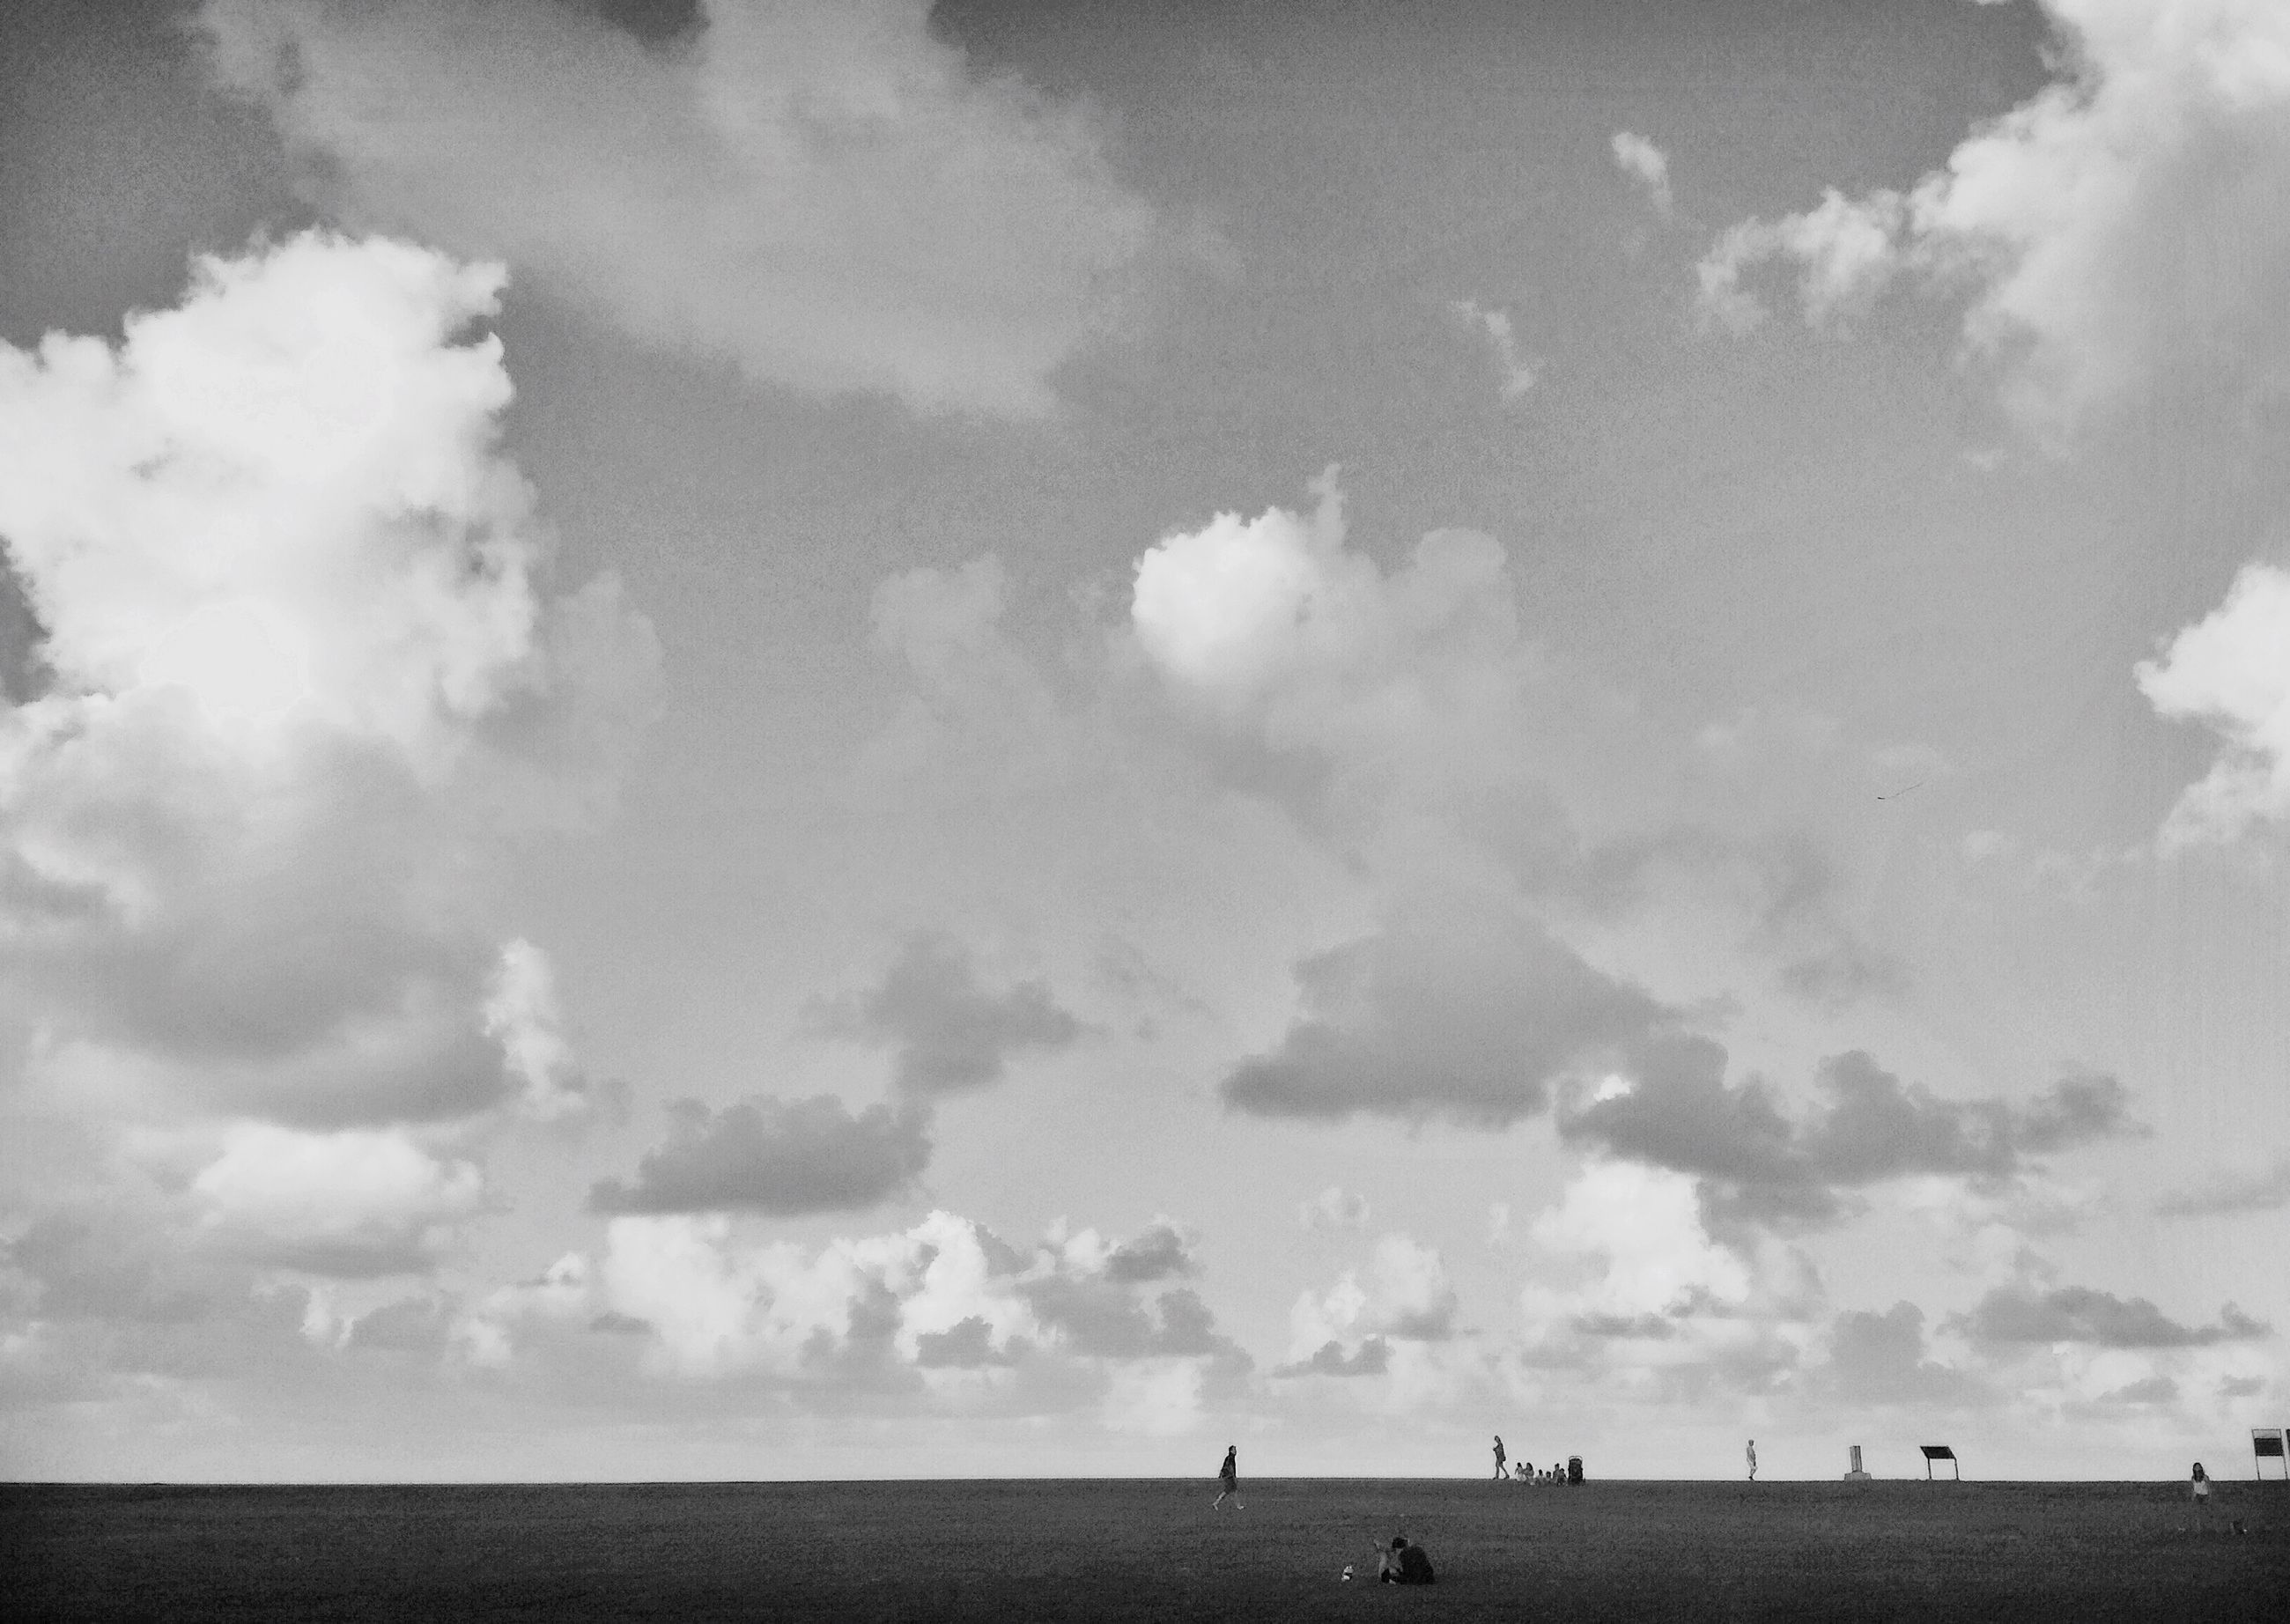 sky, tranquility, tranquil scene, landscape, cloud, field, nature, vacations, horizon over land, cloudscape, day, tourism, scenics, cloud - sky, outdoors, beauty in nature, sea, solitude, ocean, non-urban scene, distant, cloudy